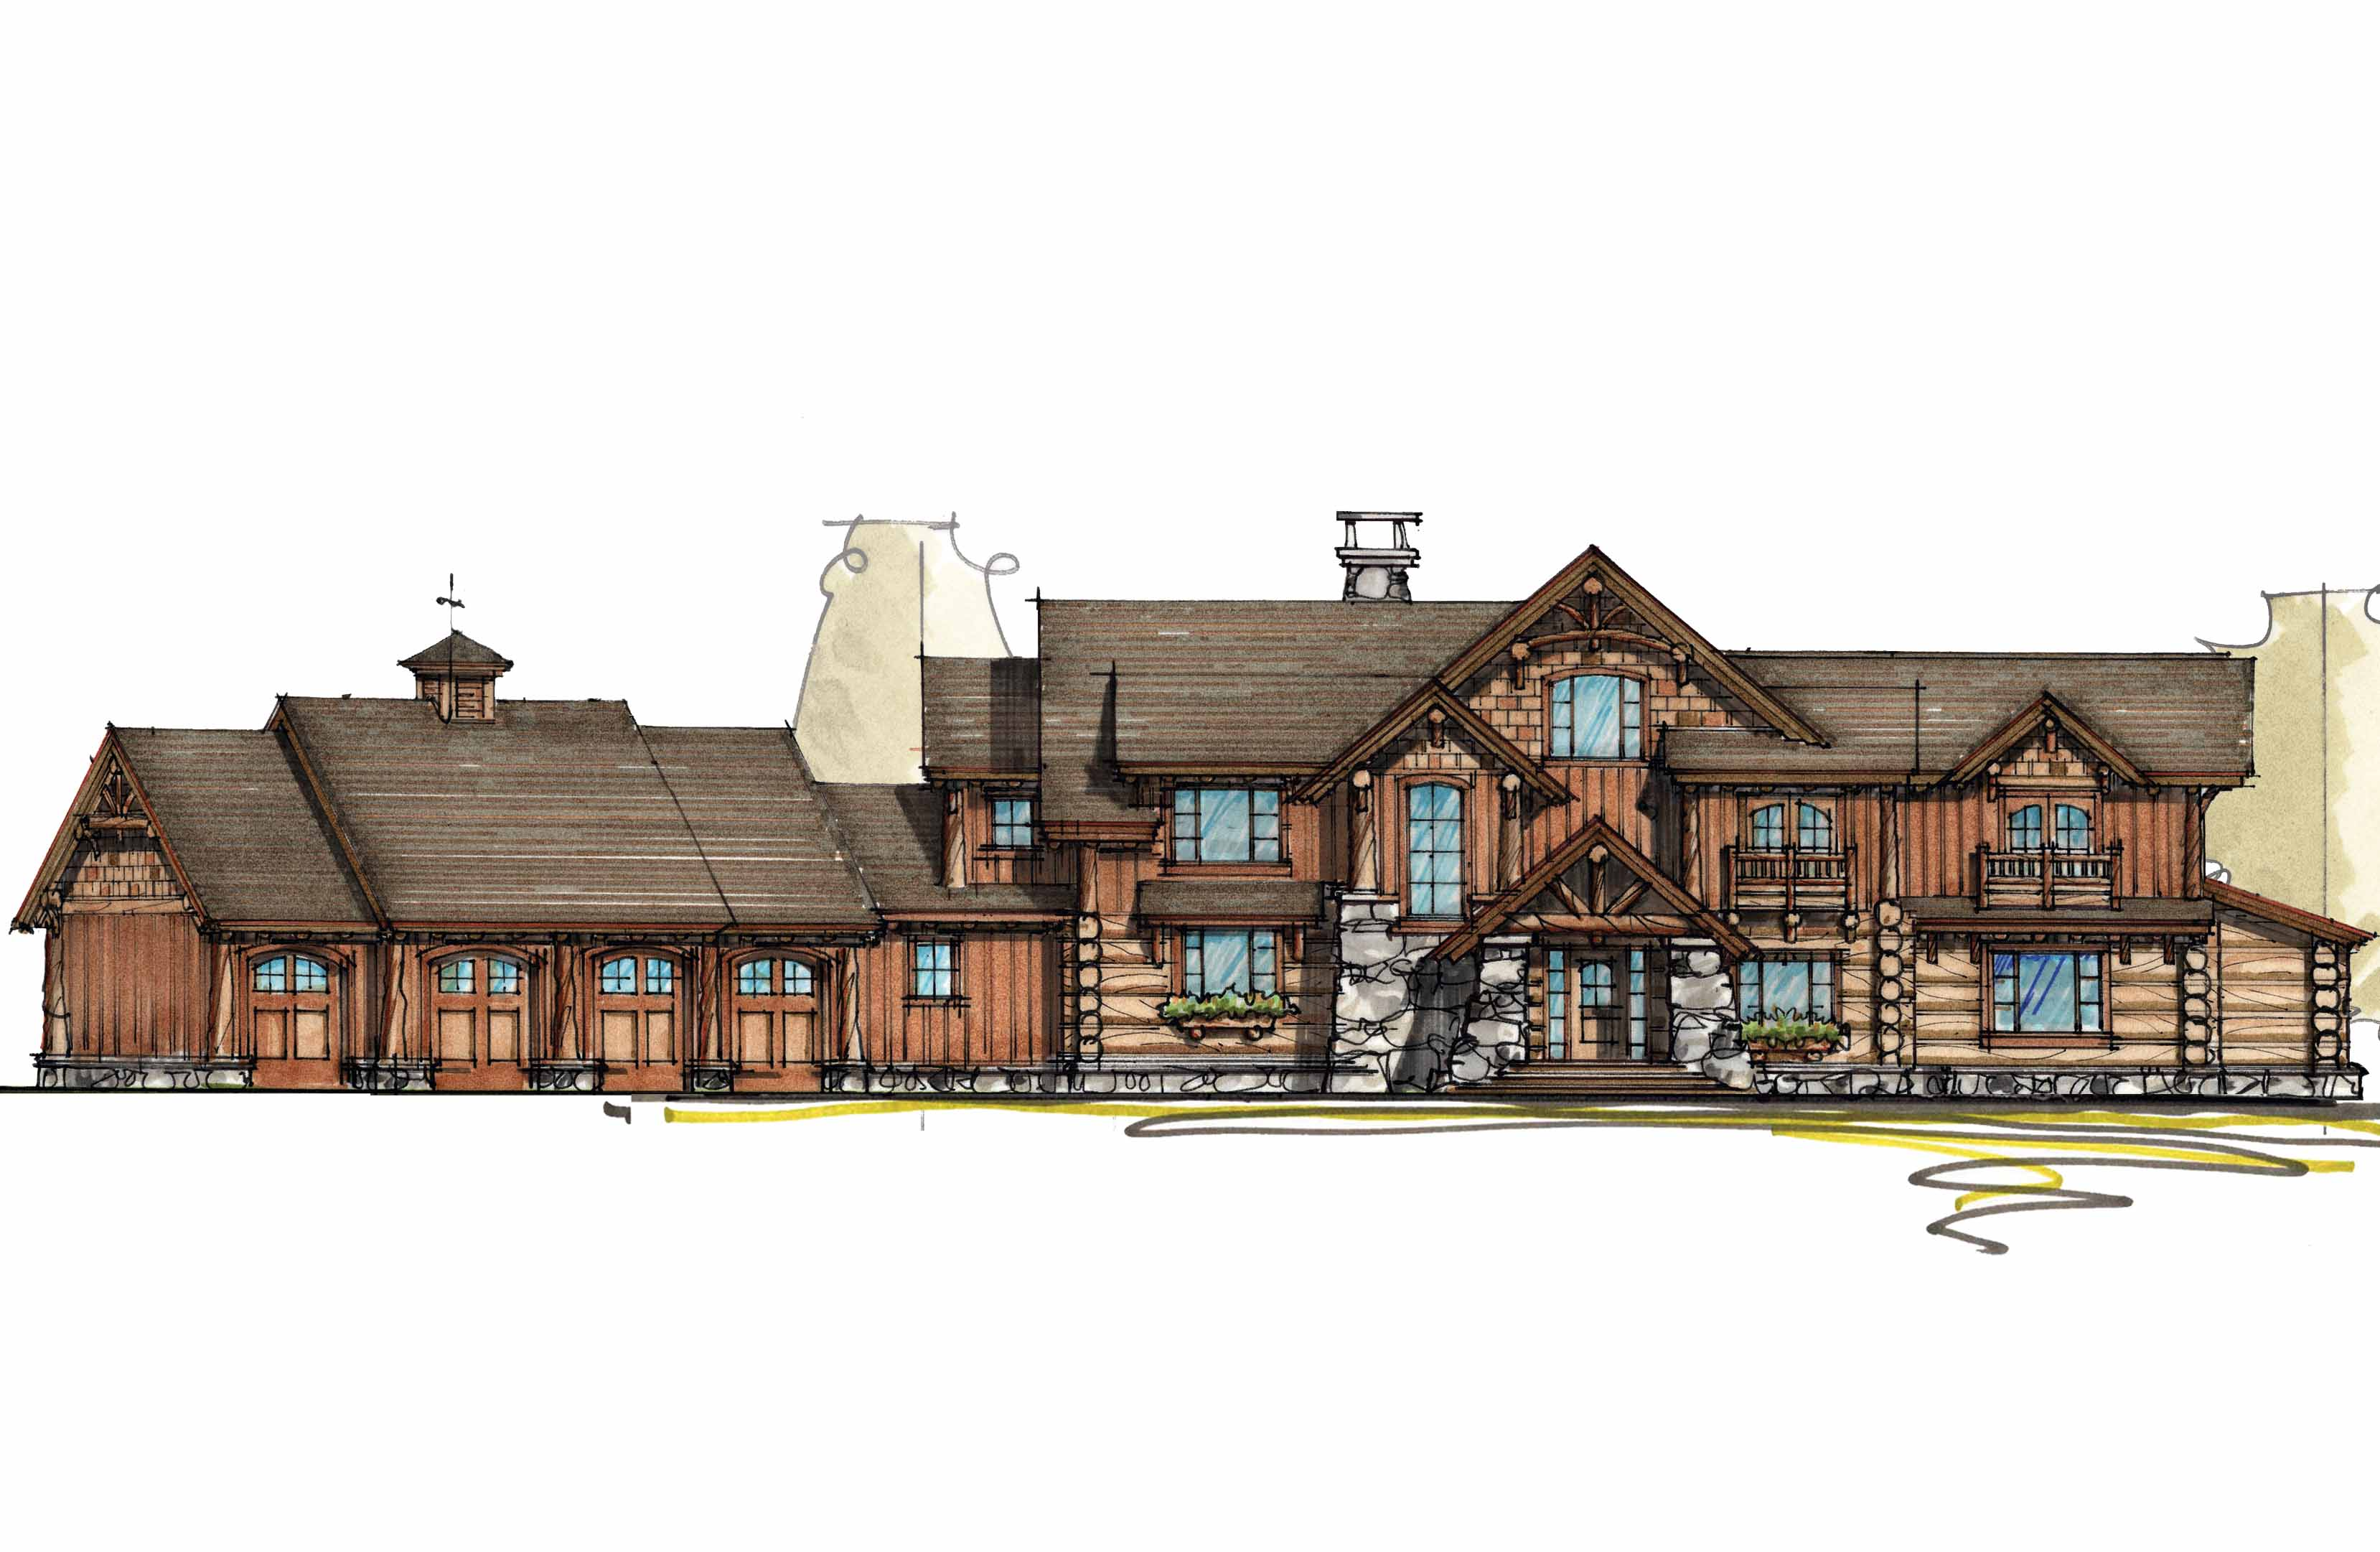 Mountain lodge with sun room 18704ck architectural for Mountain lodge house plans